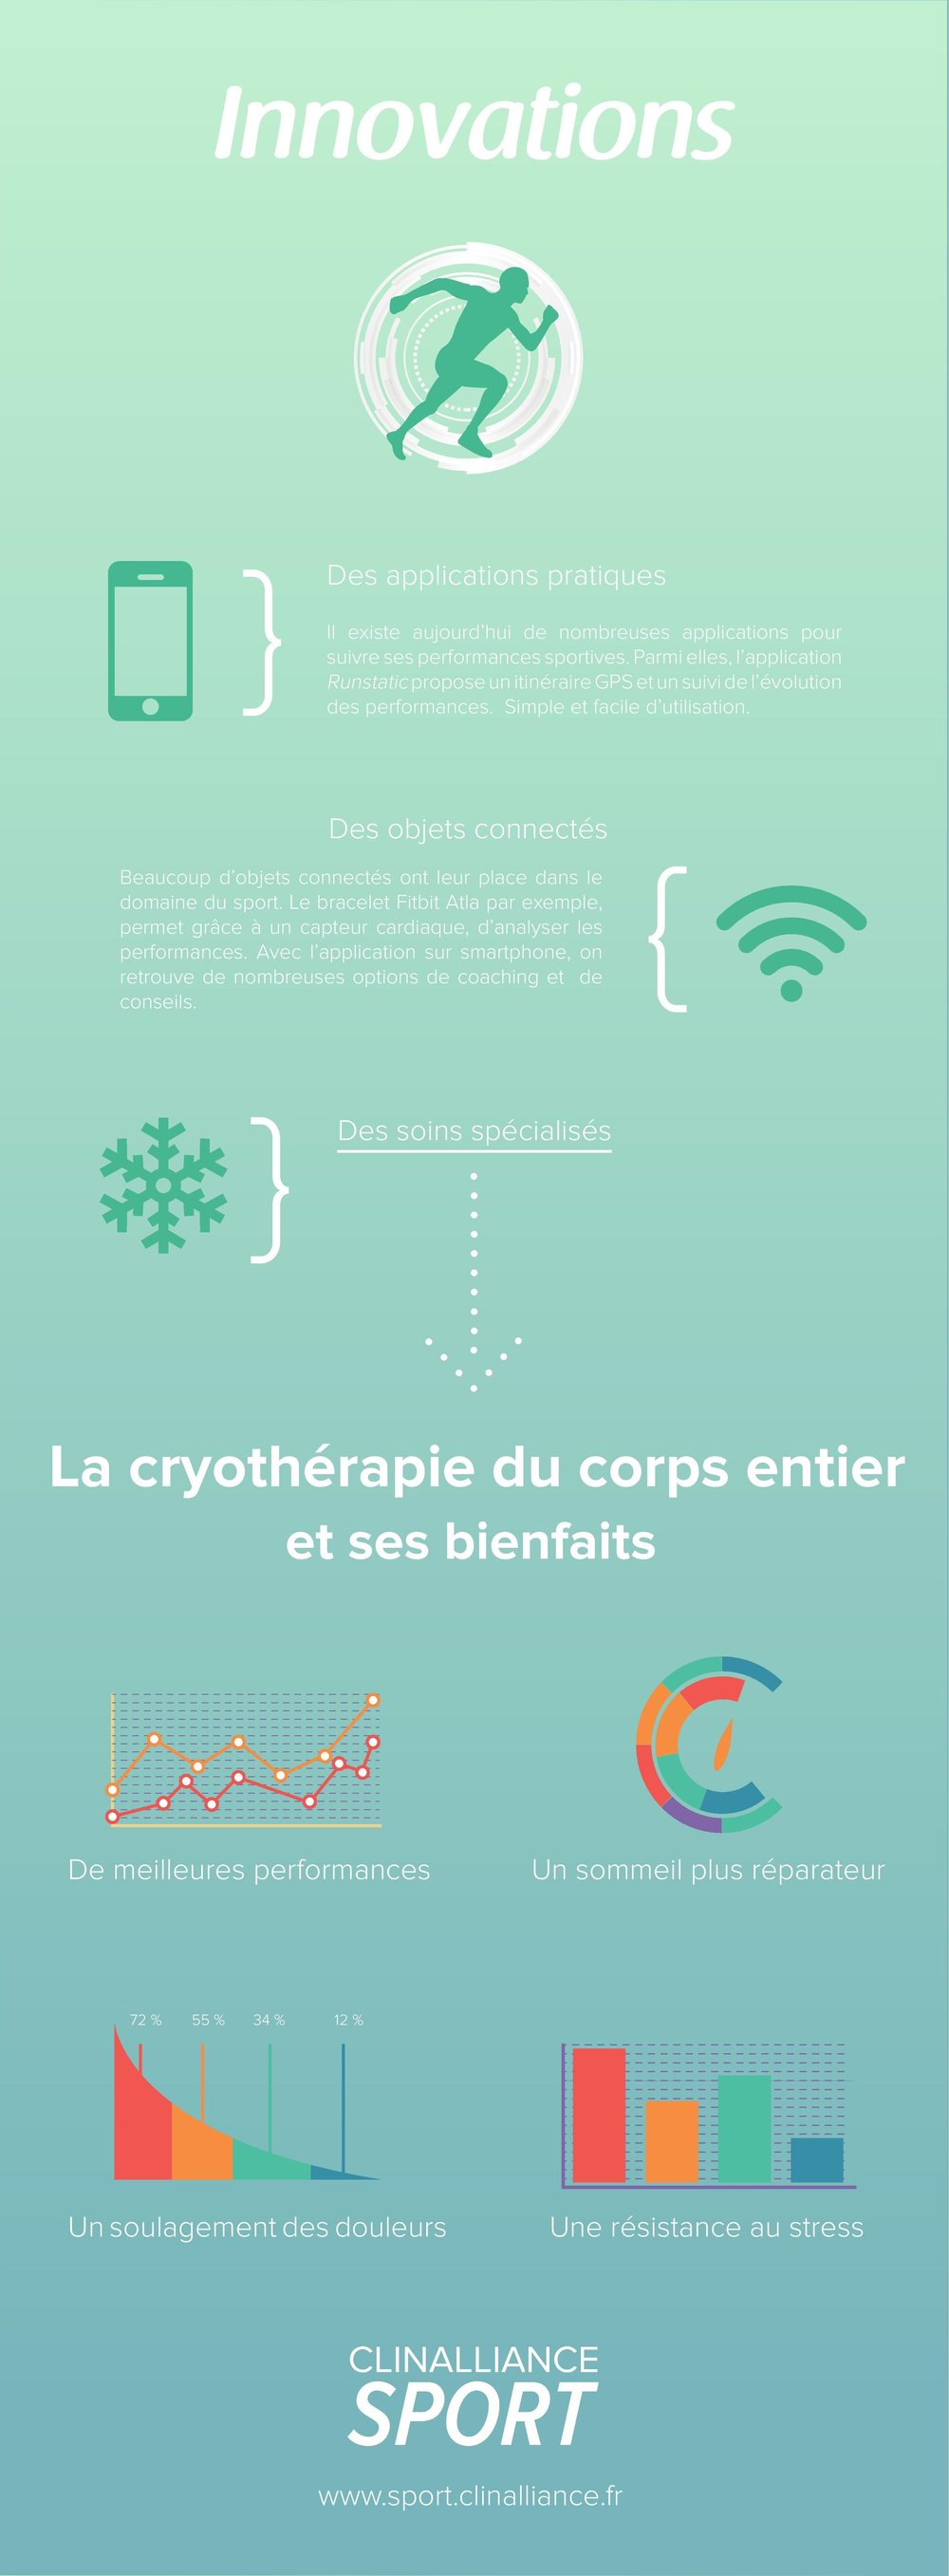 infographie-clinalliance-sport-courses-île-de-france partie 3.jpg